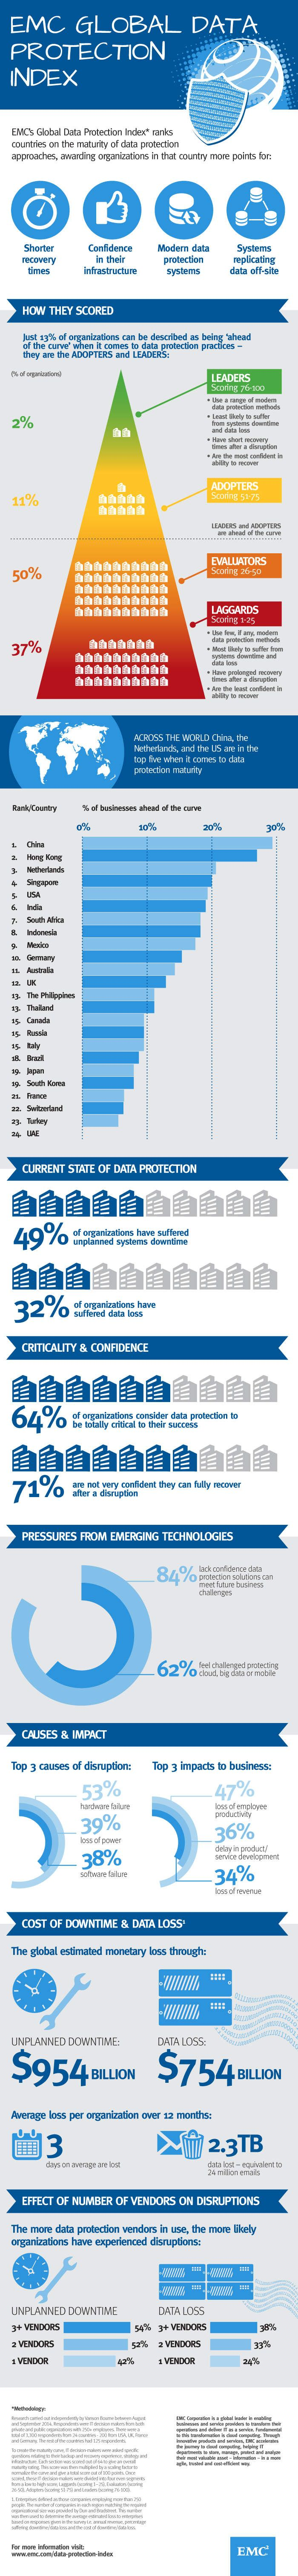 A Global View of Data Protection Readiness